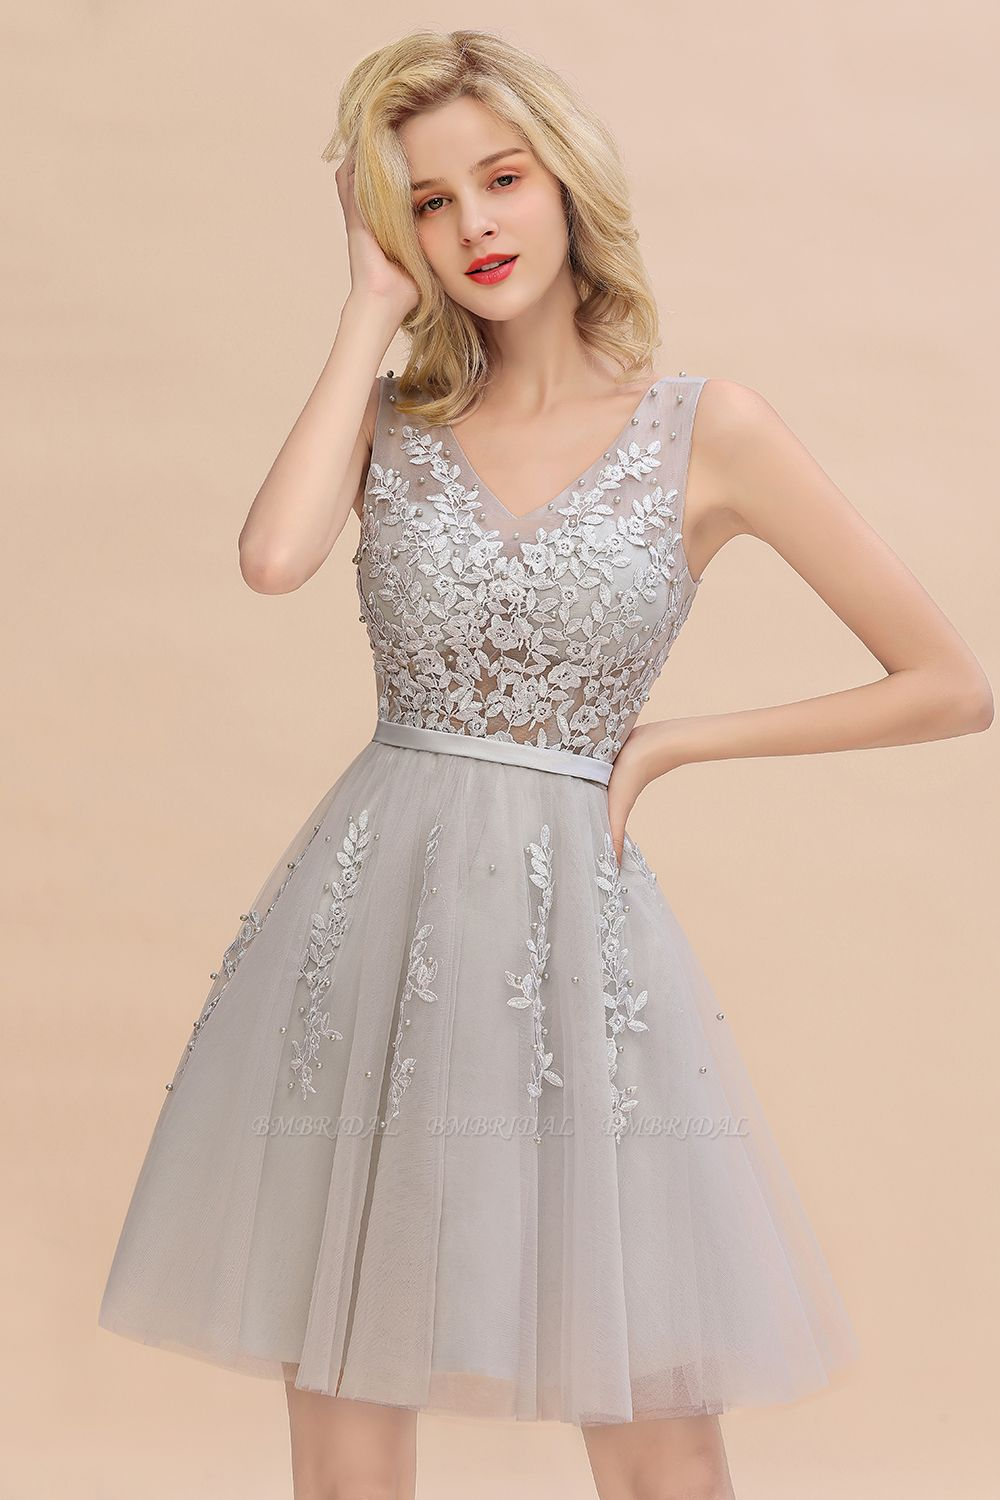 Elegant V-Neck Sleeveless Short Prom Dress Mini Homecoming Dress With Lace Appliques